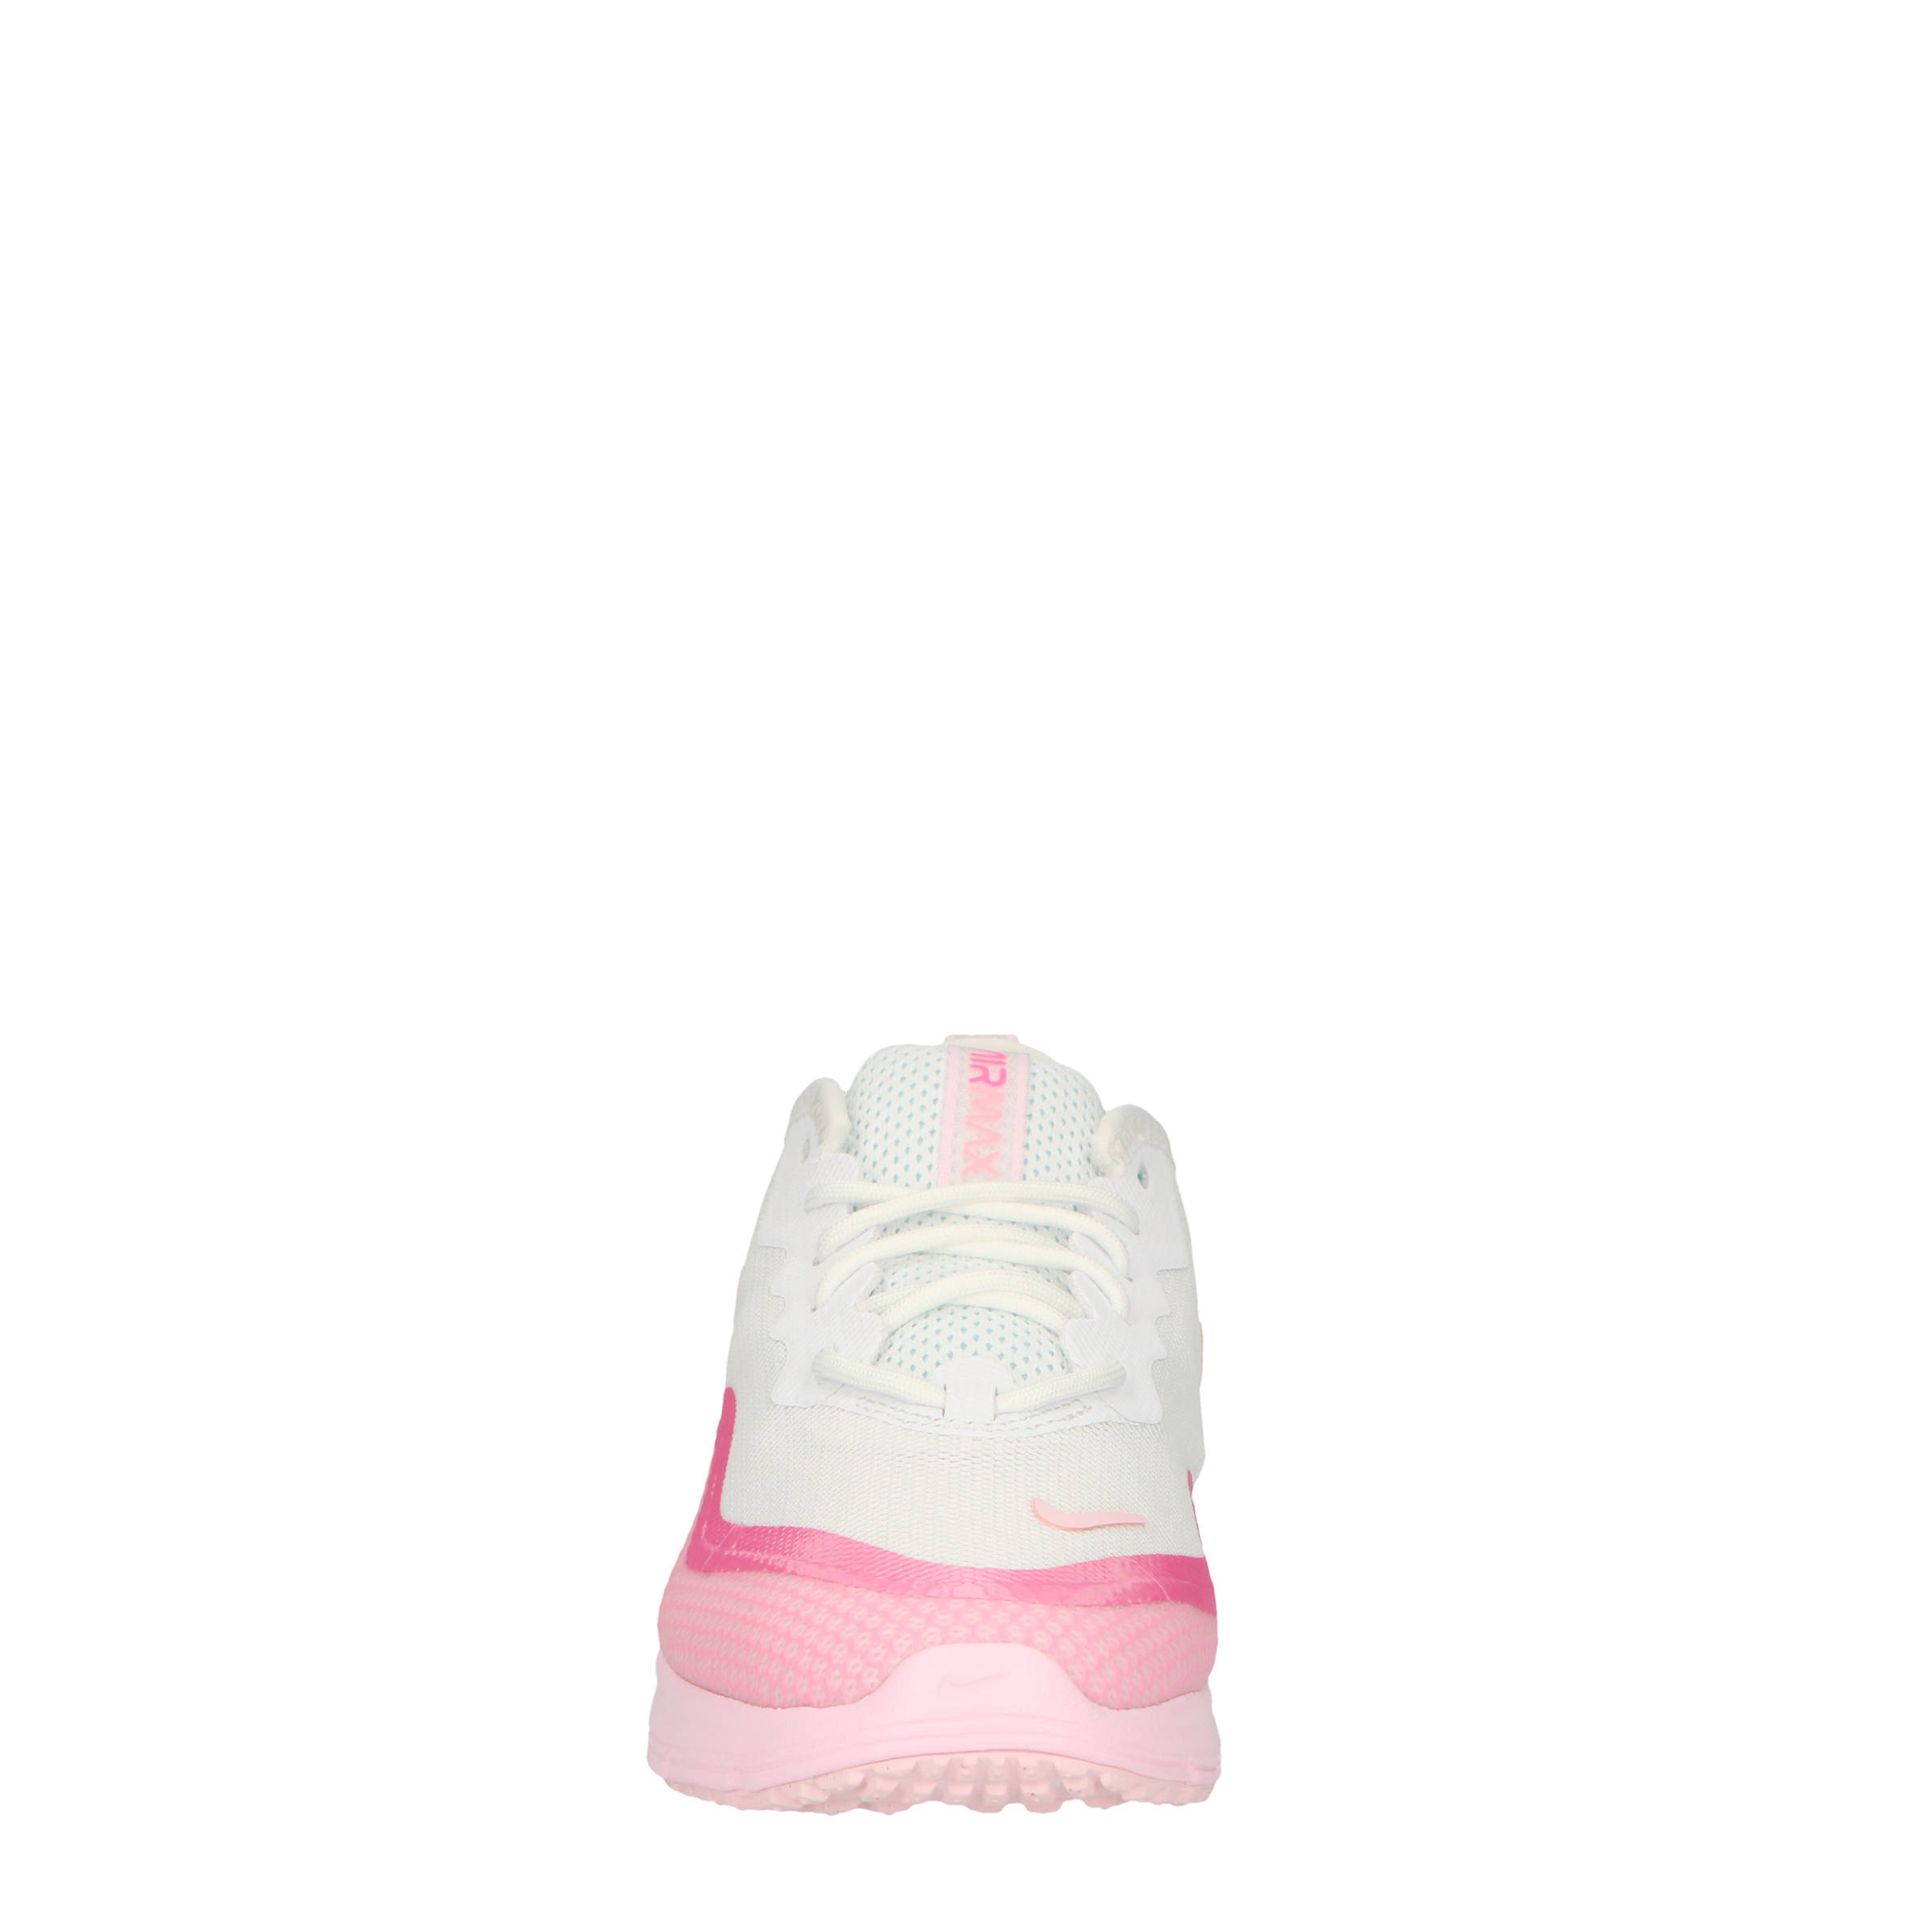 1c92416f1be Nike Air Max Sequent 4.5 sneakers wit/roze | wehkamp